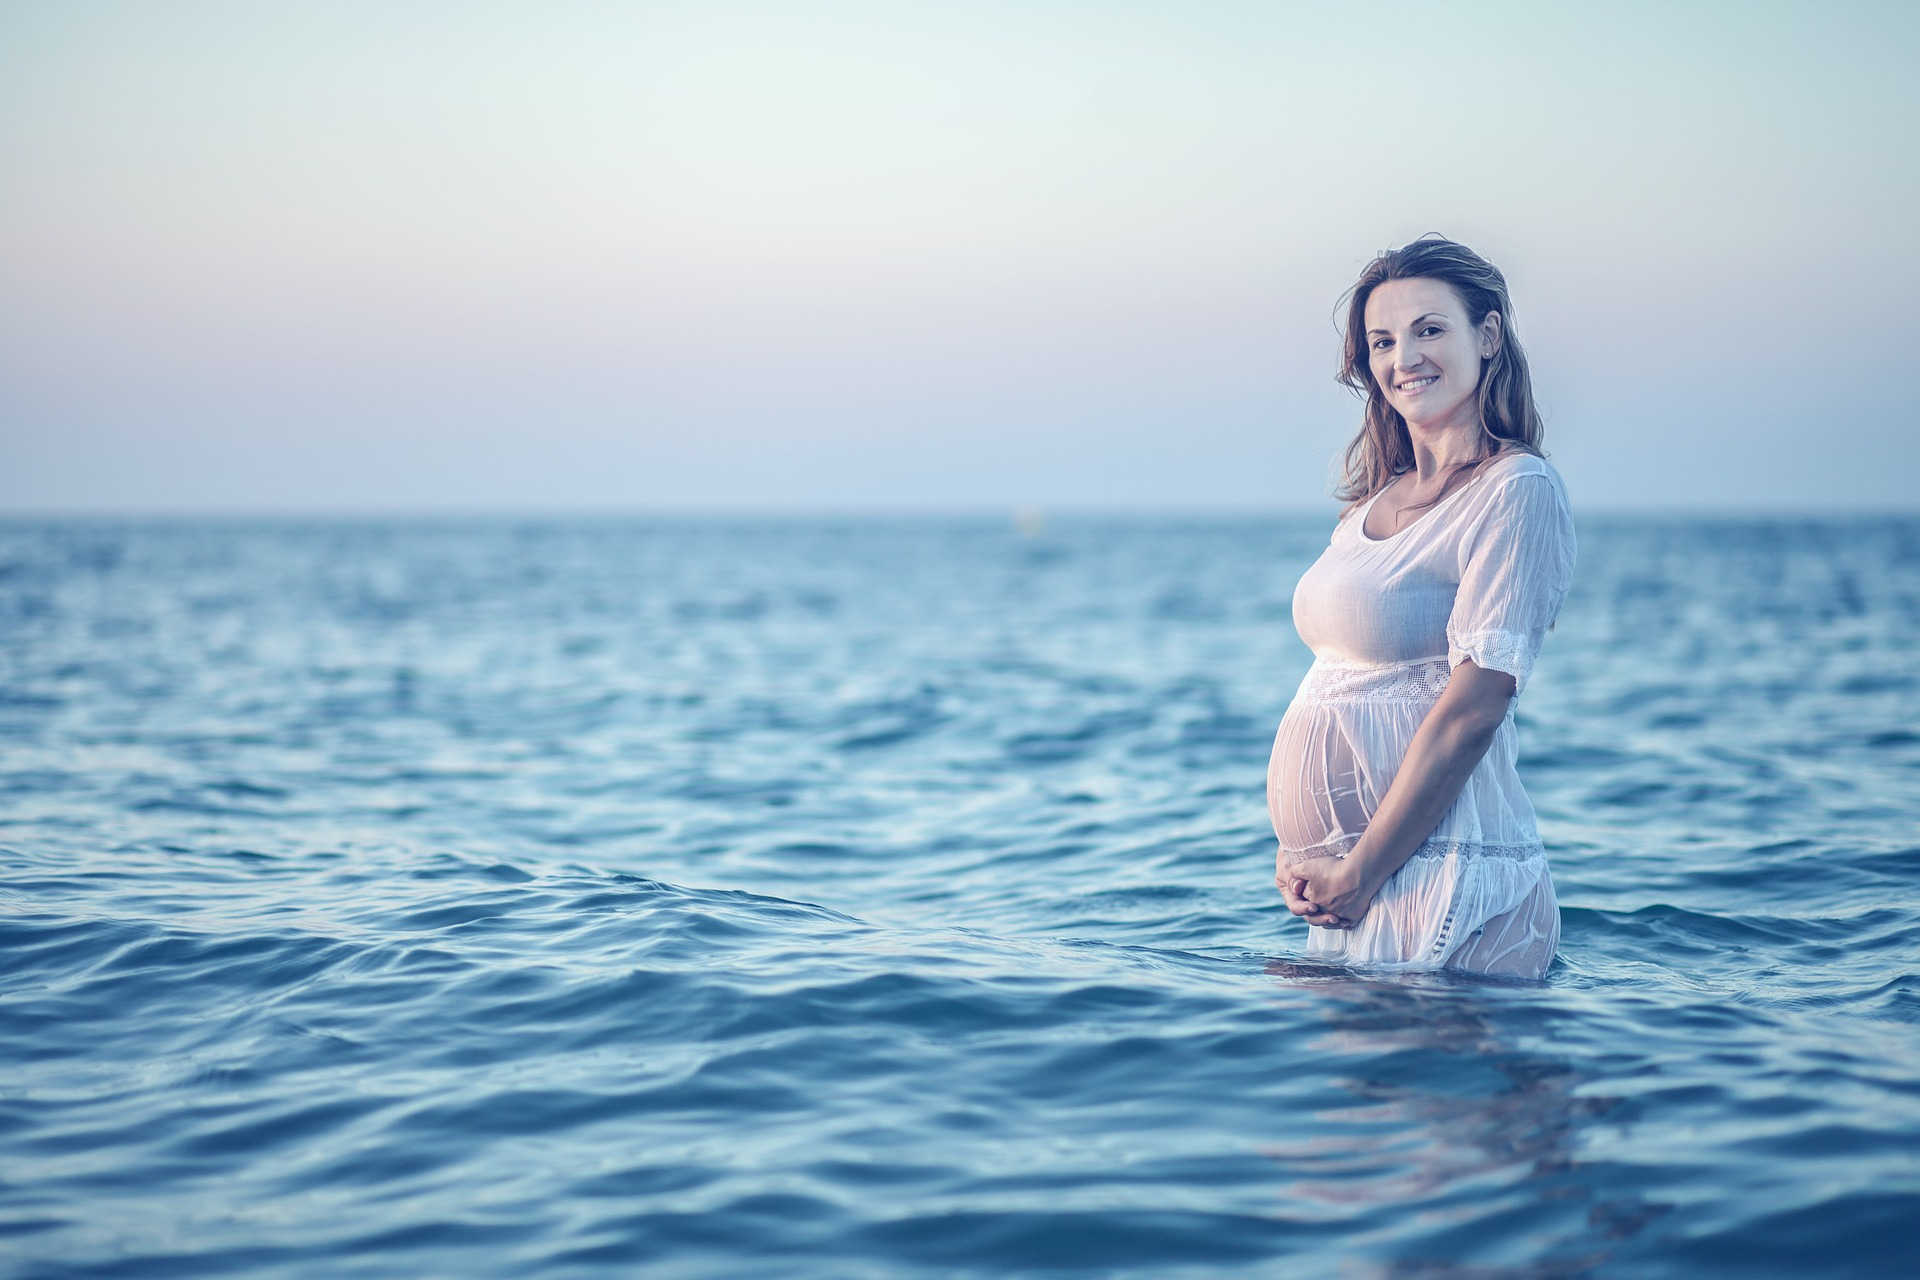 A pregnant woman in the sea: Can dolphins detect pregnancy?